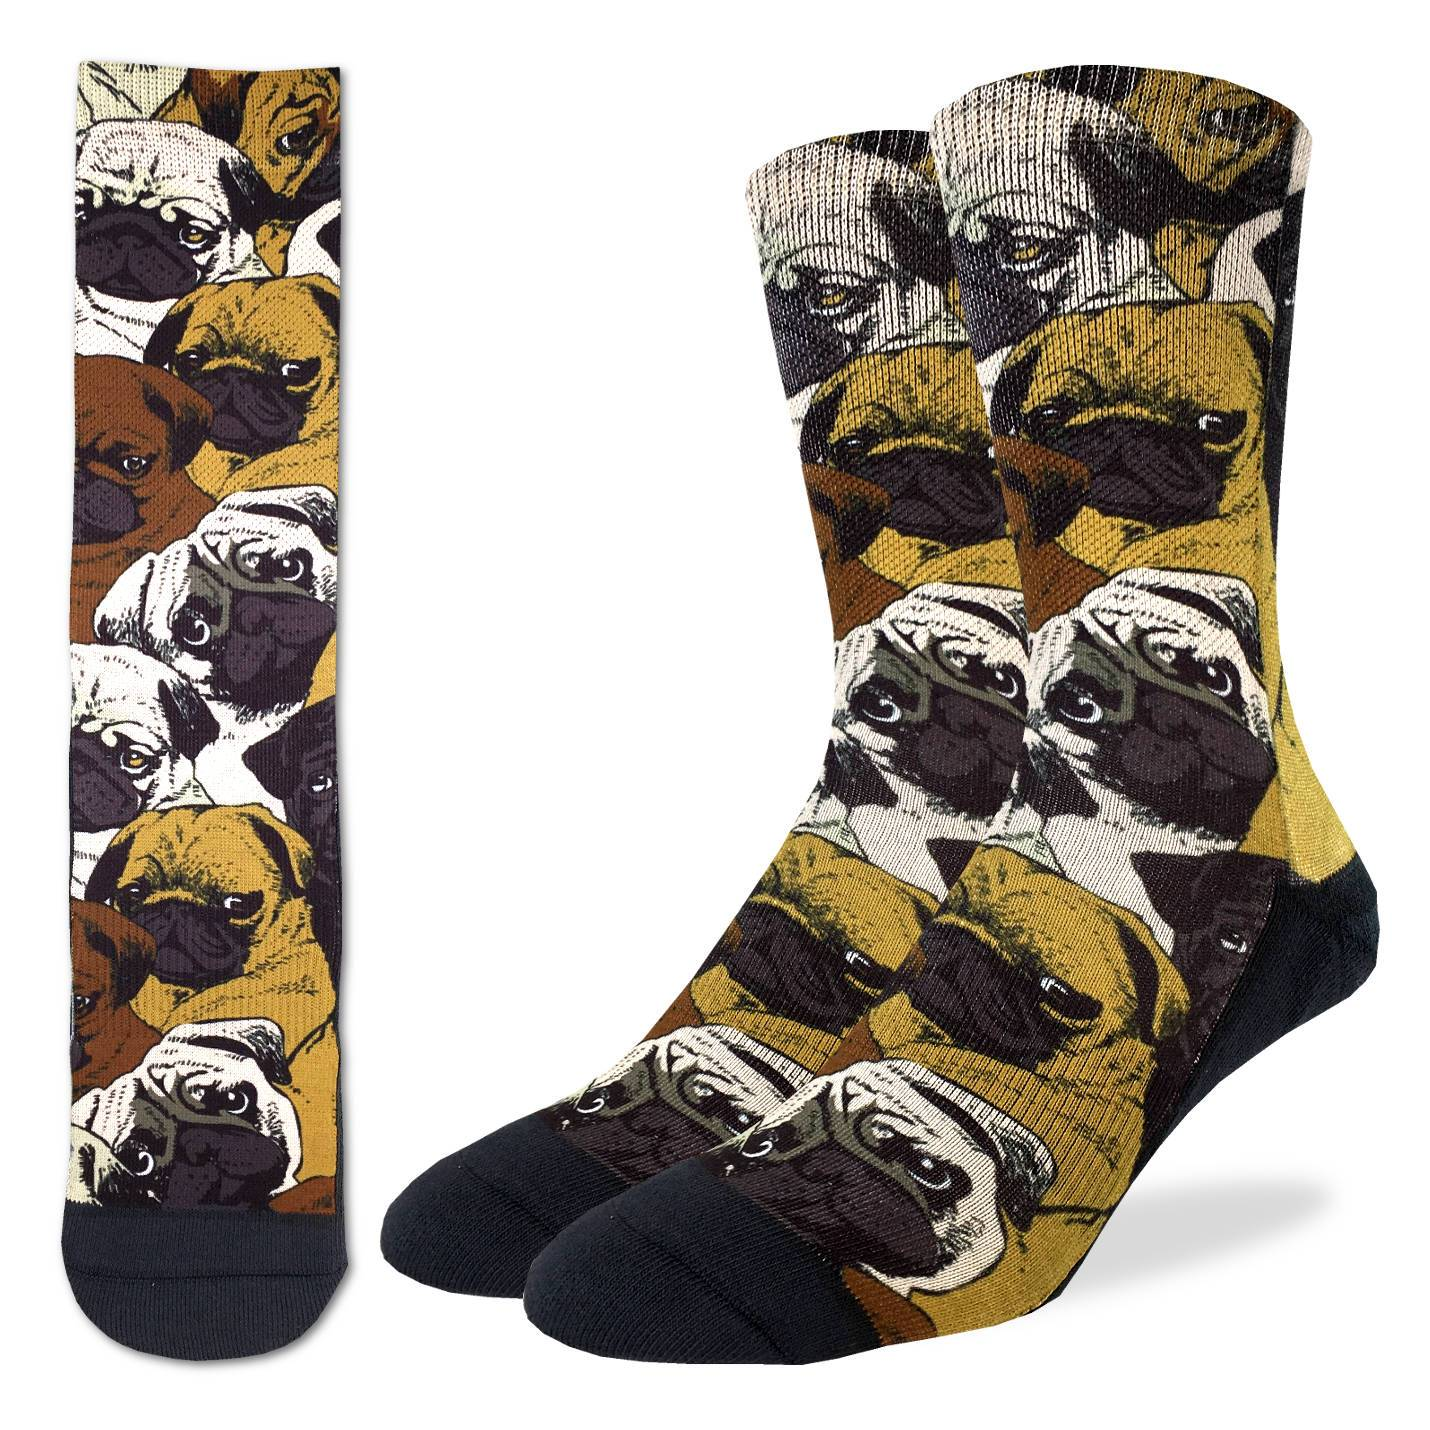 Men's Social Pugs Socks - Good Luck Sock